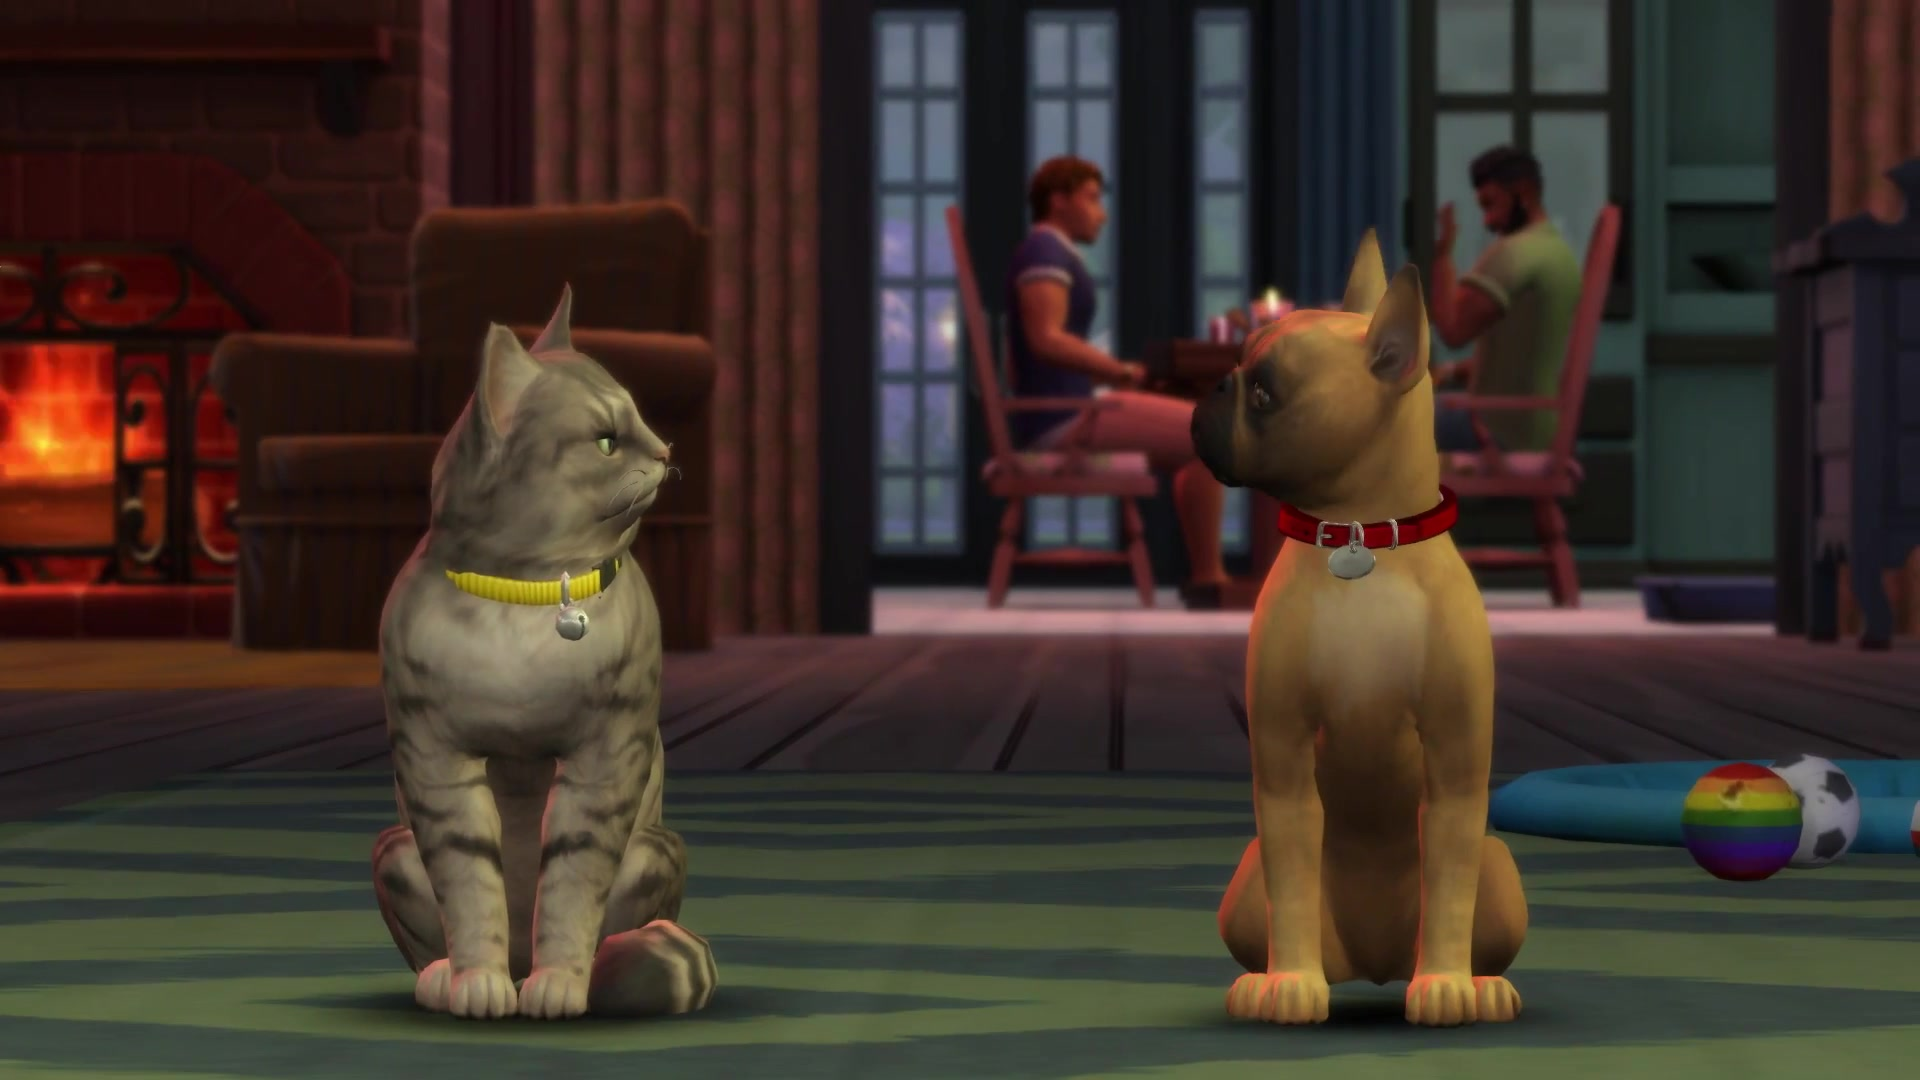 Sims 4 Cats  Dogs Gameplay Impressions Pets Release -4332